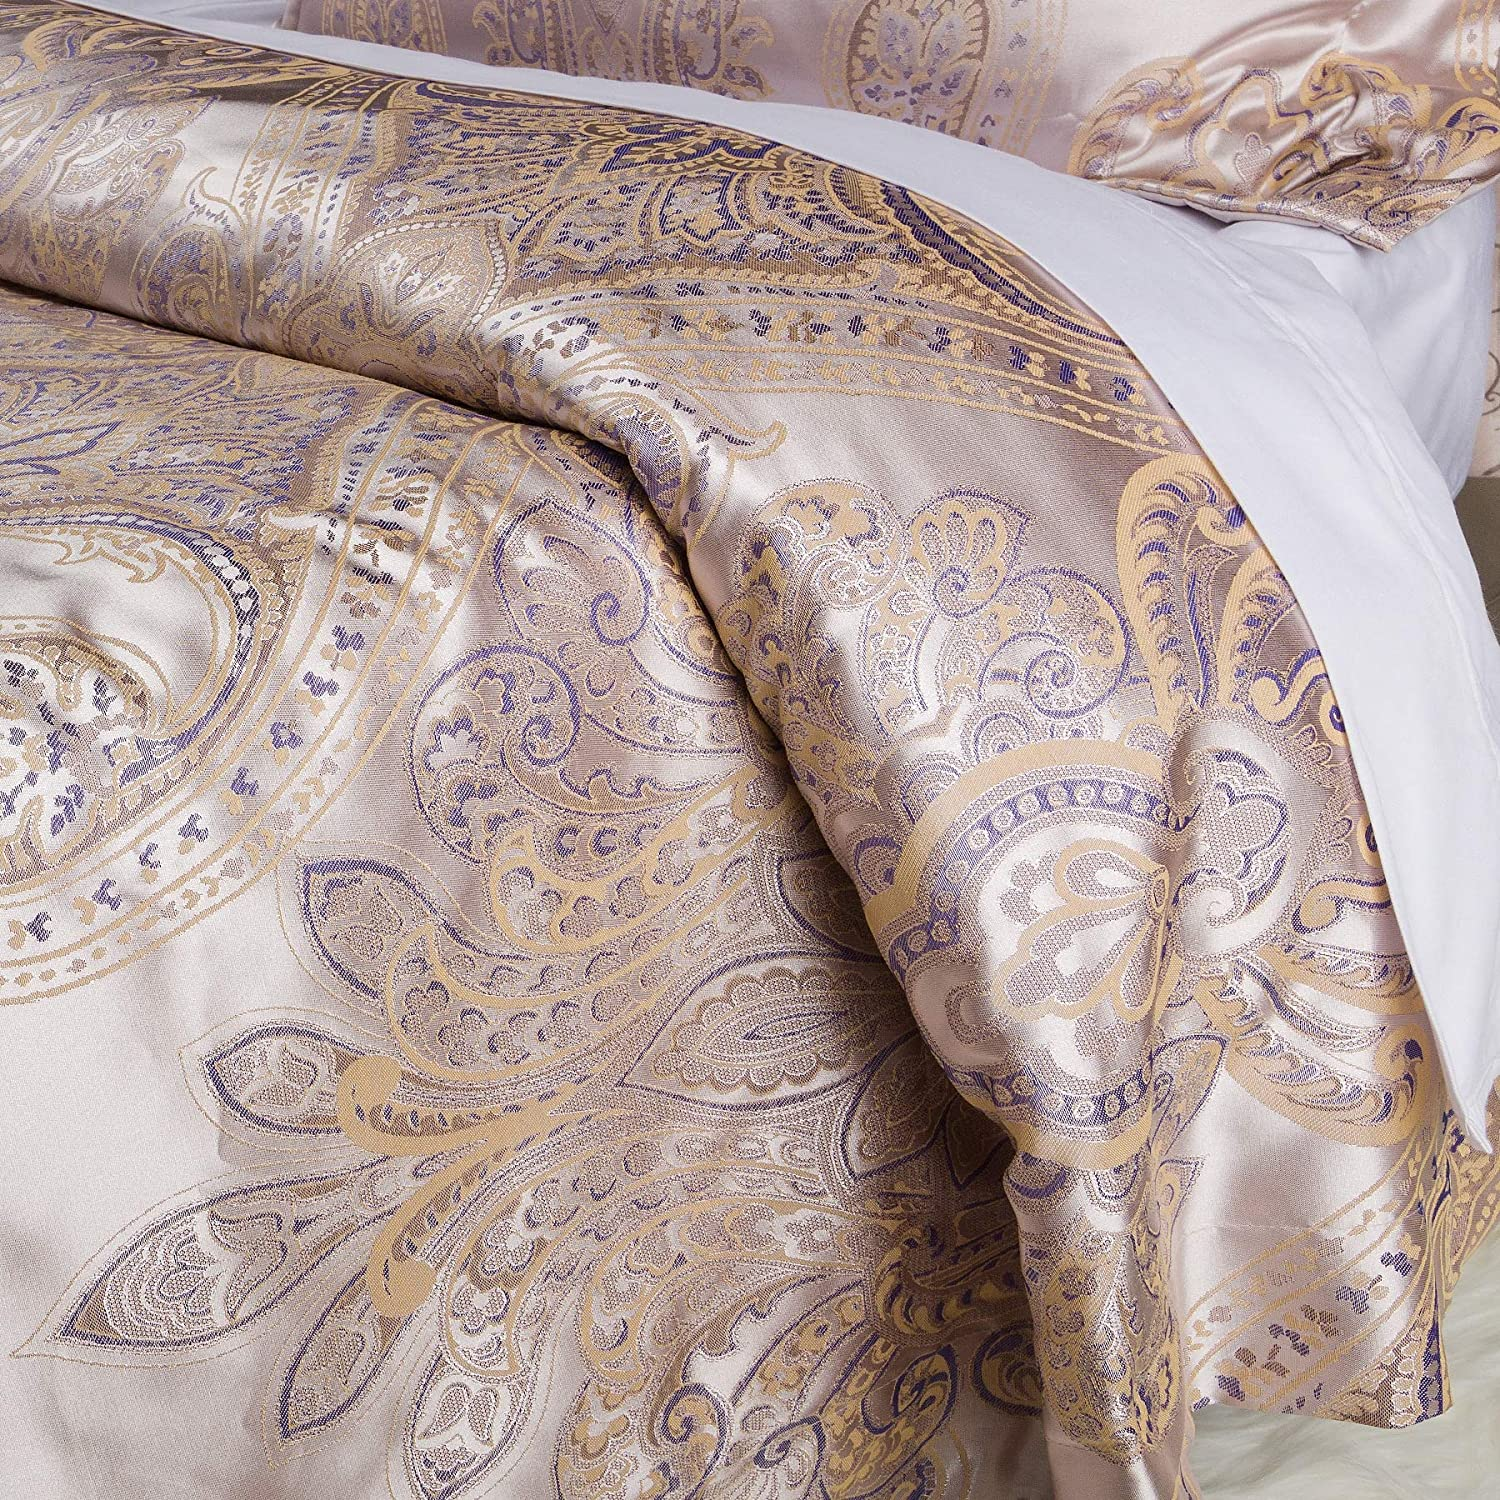 Luxurious Duvet Cover Sets Cotton Rich Silky Woven Jacquard Breathable Stain and Fade Resistant Memories of Italy (Amalfi, King)